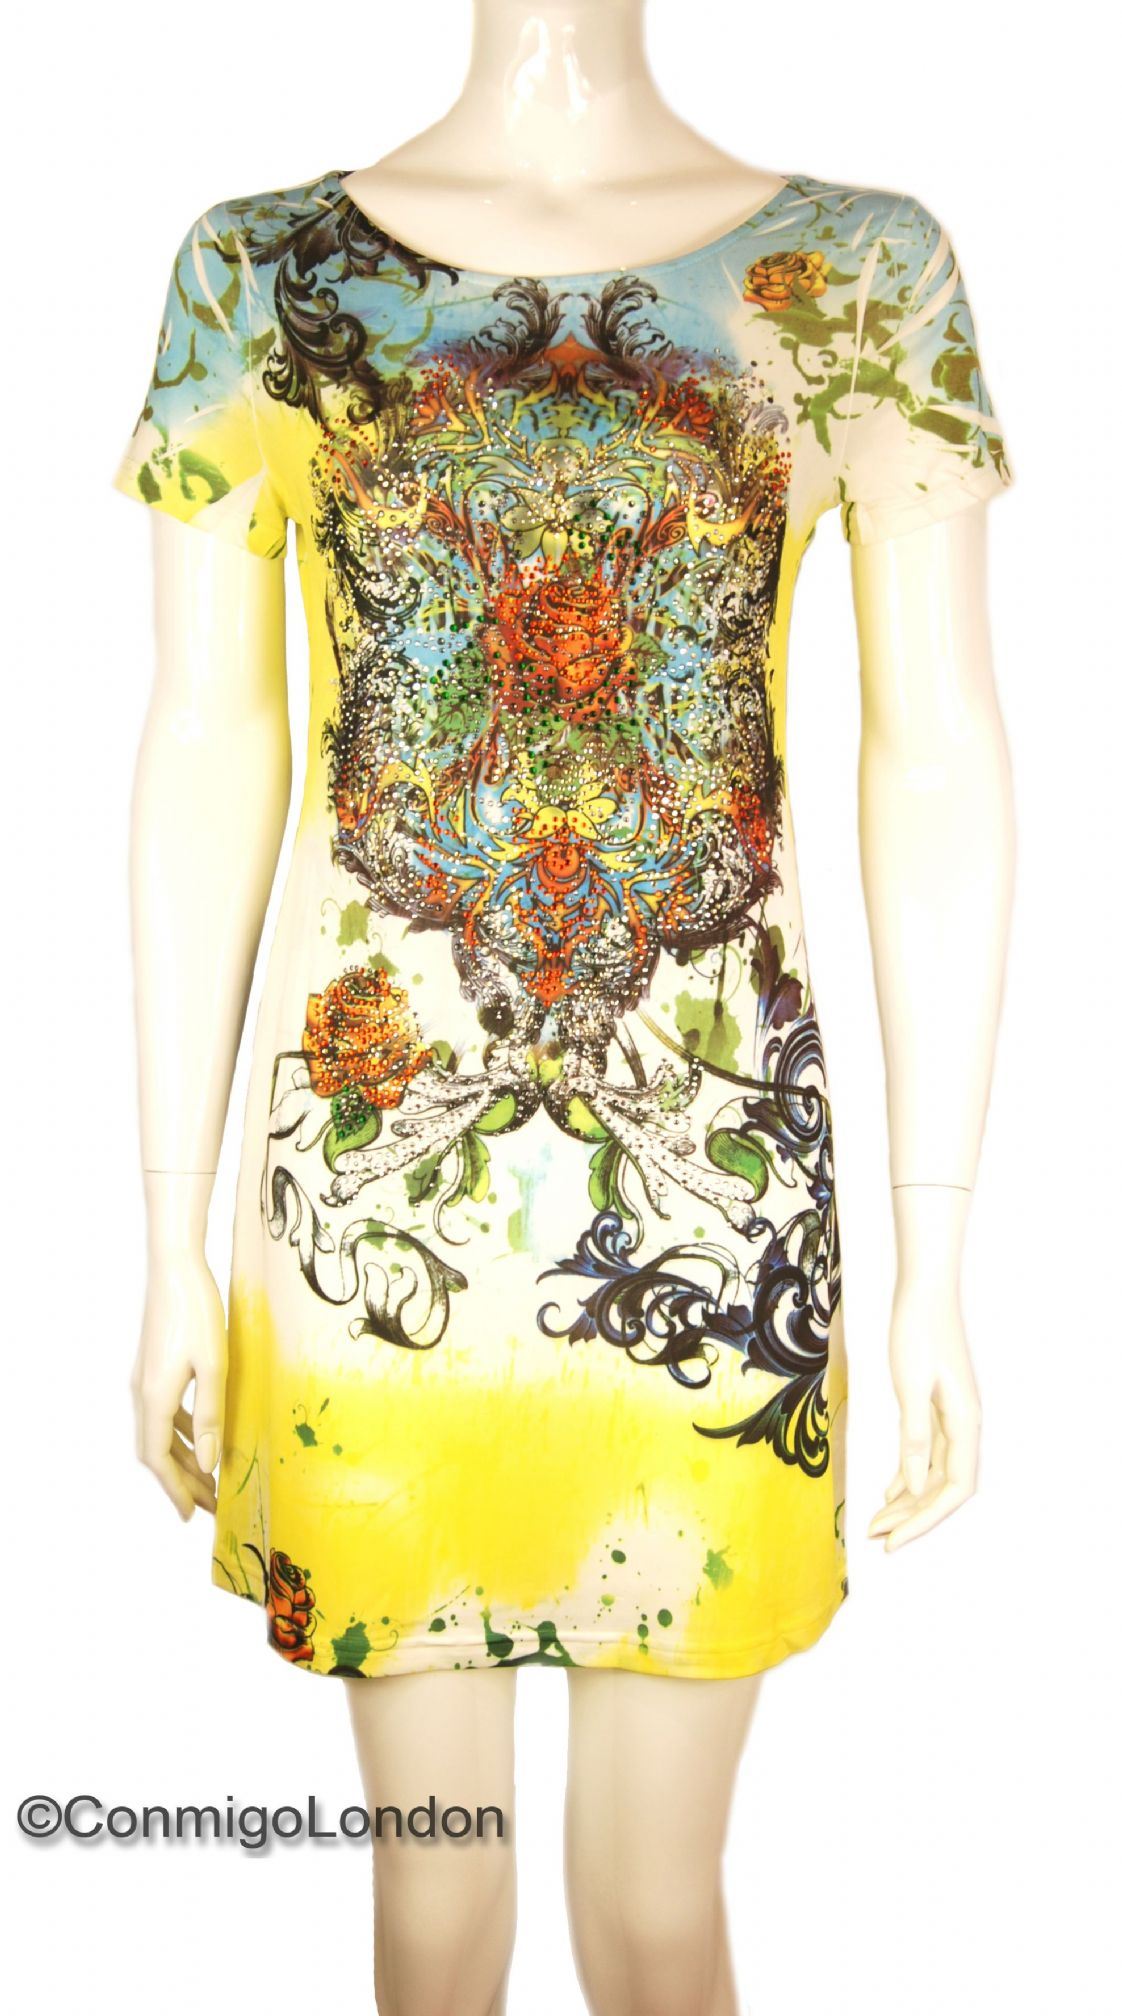 http://www.conmigolondon.co.uk/ekmps/shops/conmigo/images/con-mi-go-london-v2-colourful-sequined-embelished-flora-print-jersey-dress-yellow-short-sleeves-dress-size-medium-%5B4%5D-7739-p.jpg